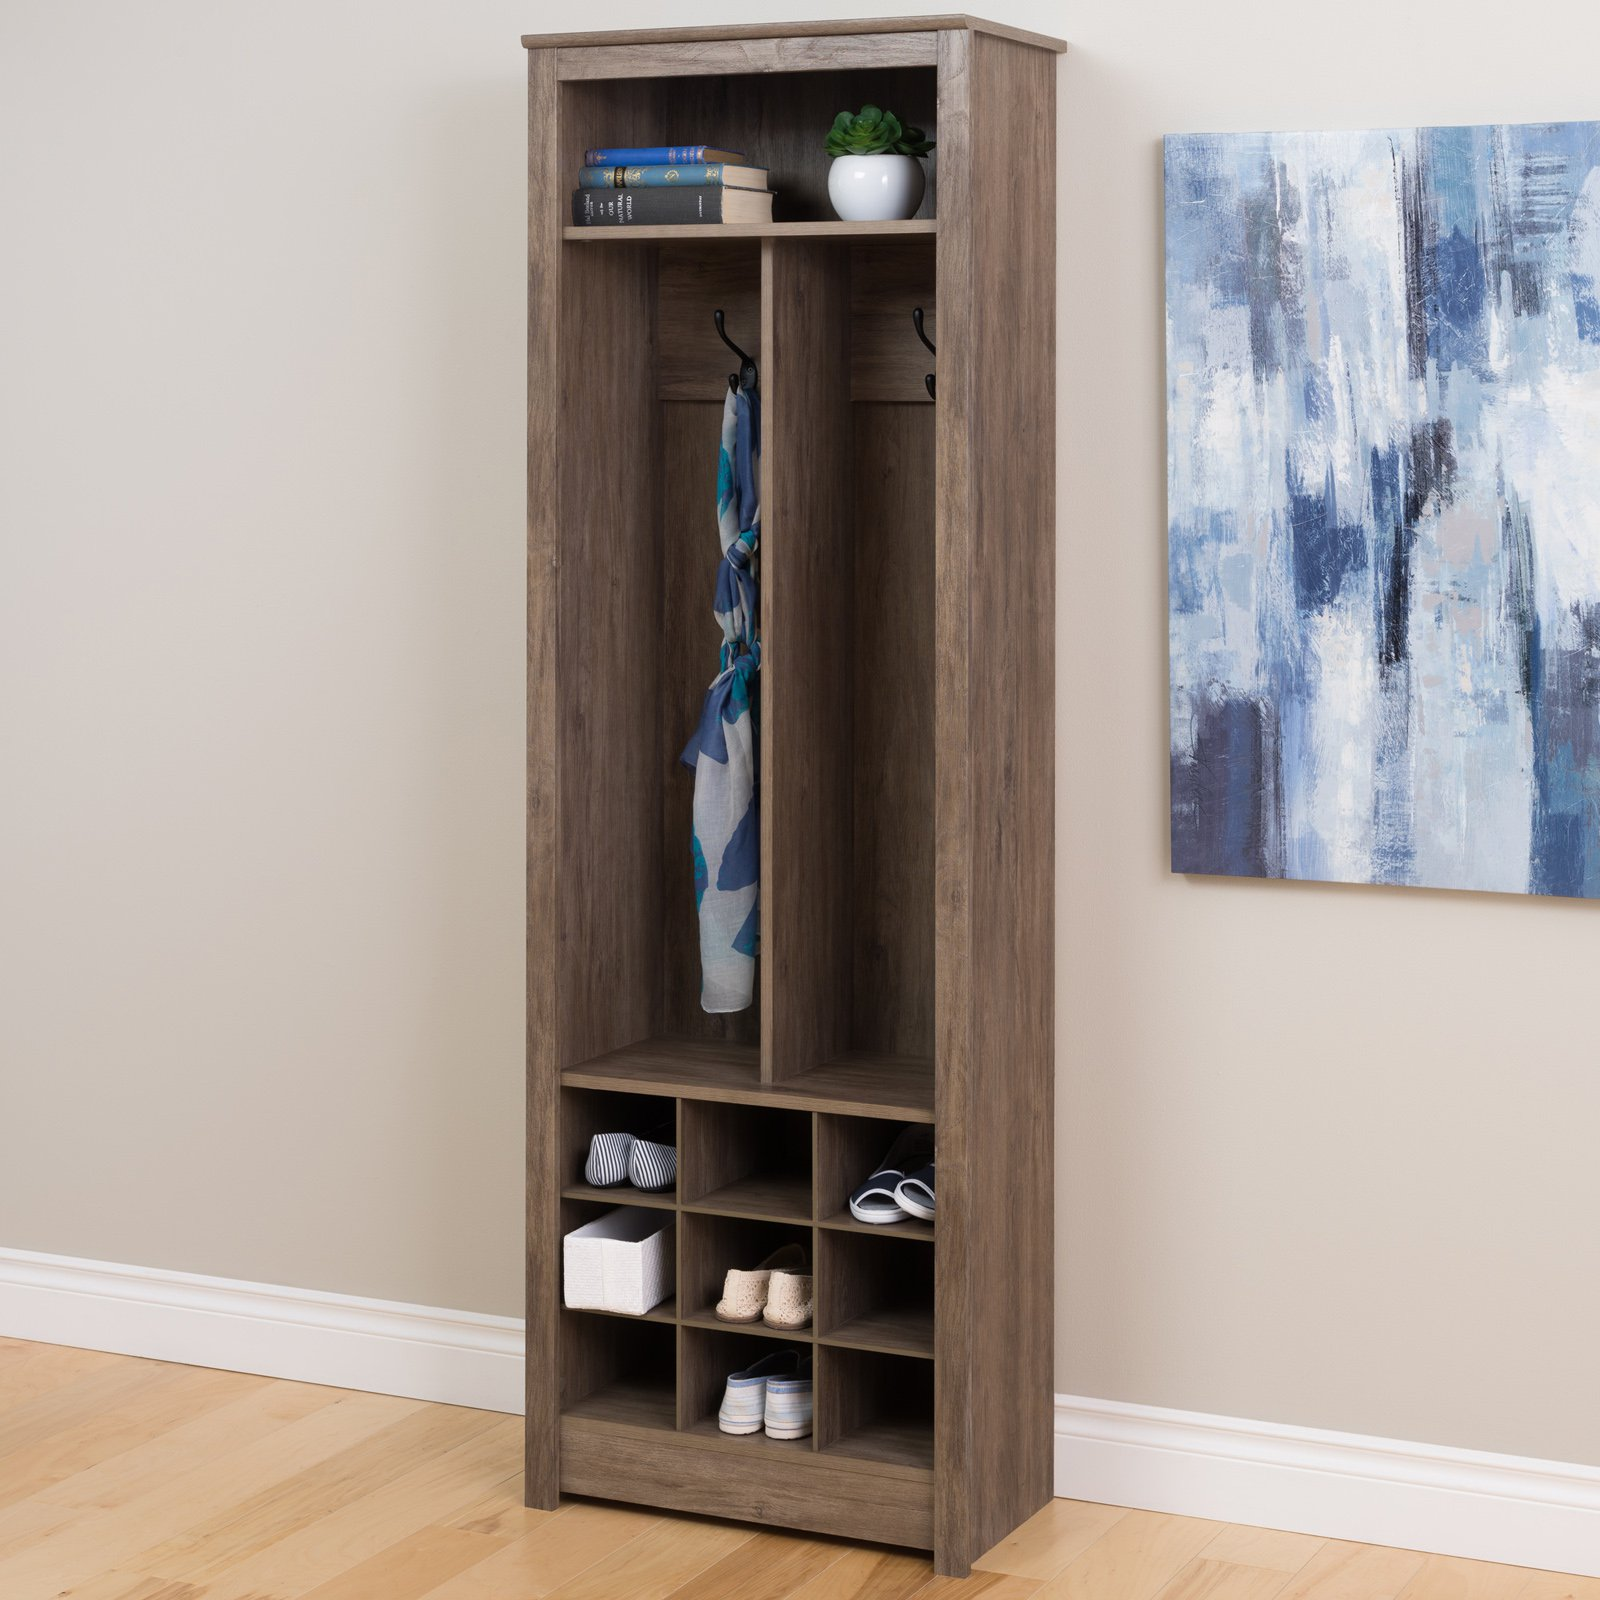 Prepac Space-Saving Entryway Organizer with Shoe Storage, Drifted Gray